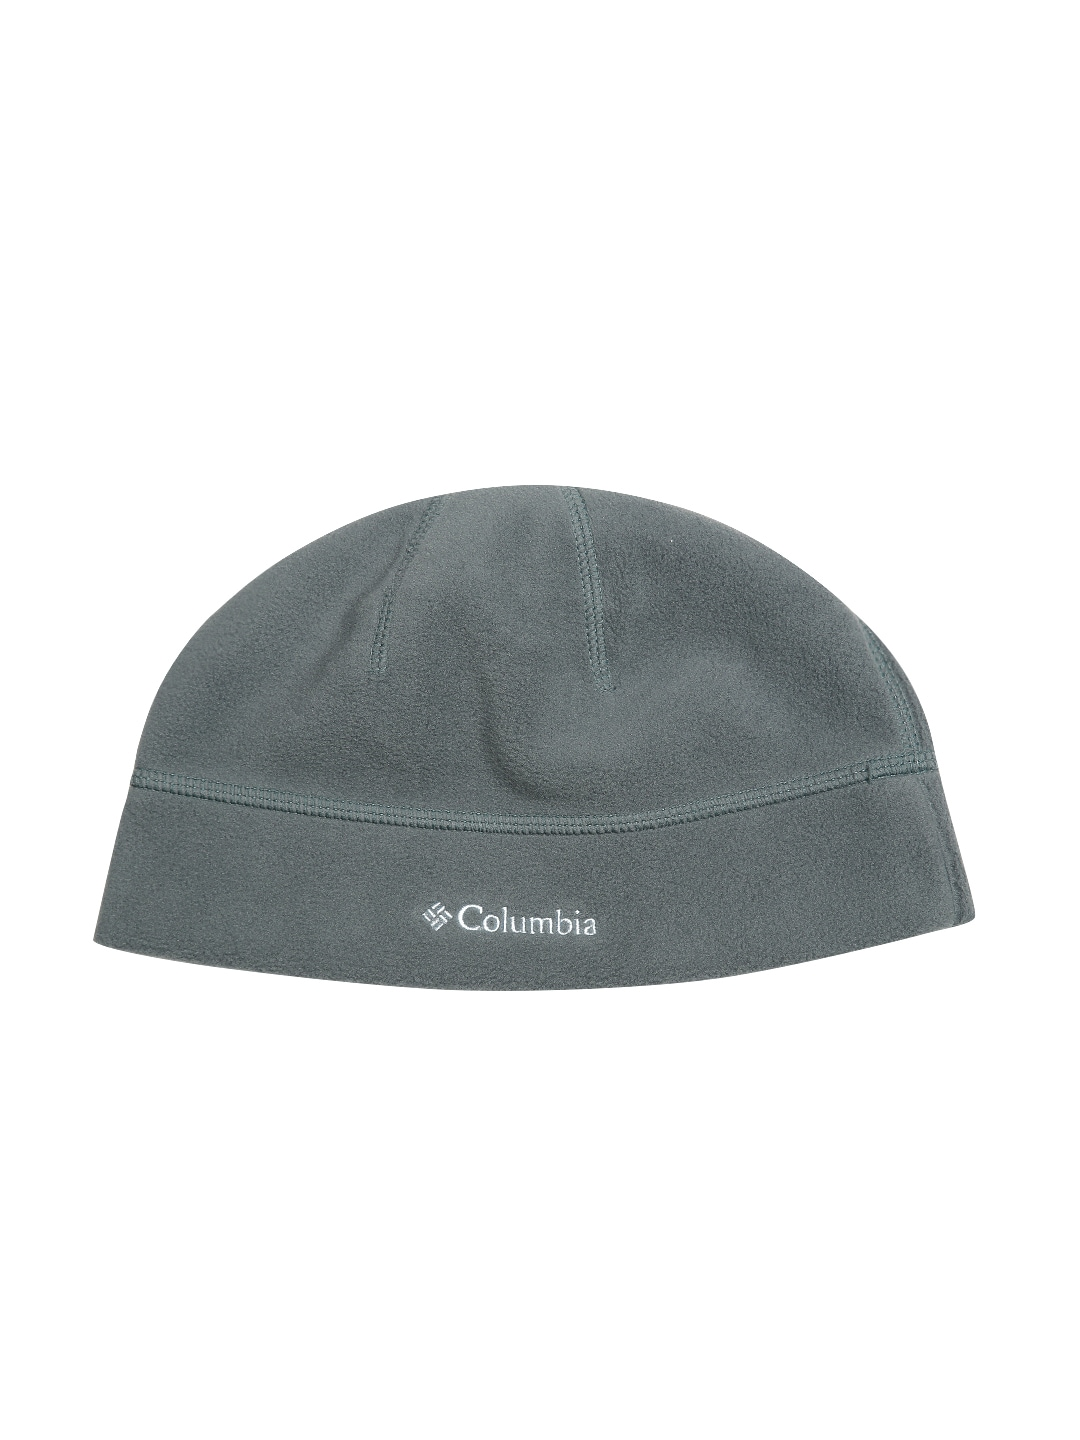 Columbia Caps - Buy Columbia Caps online in India 5953317b87ca